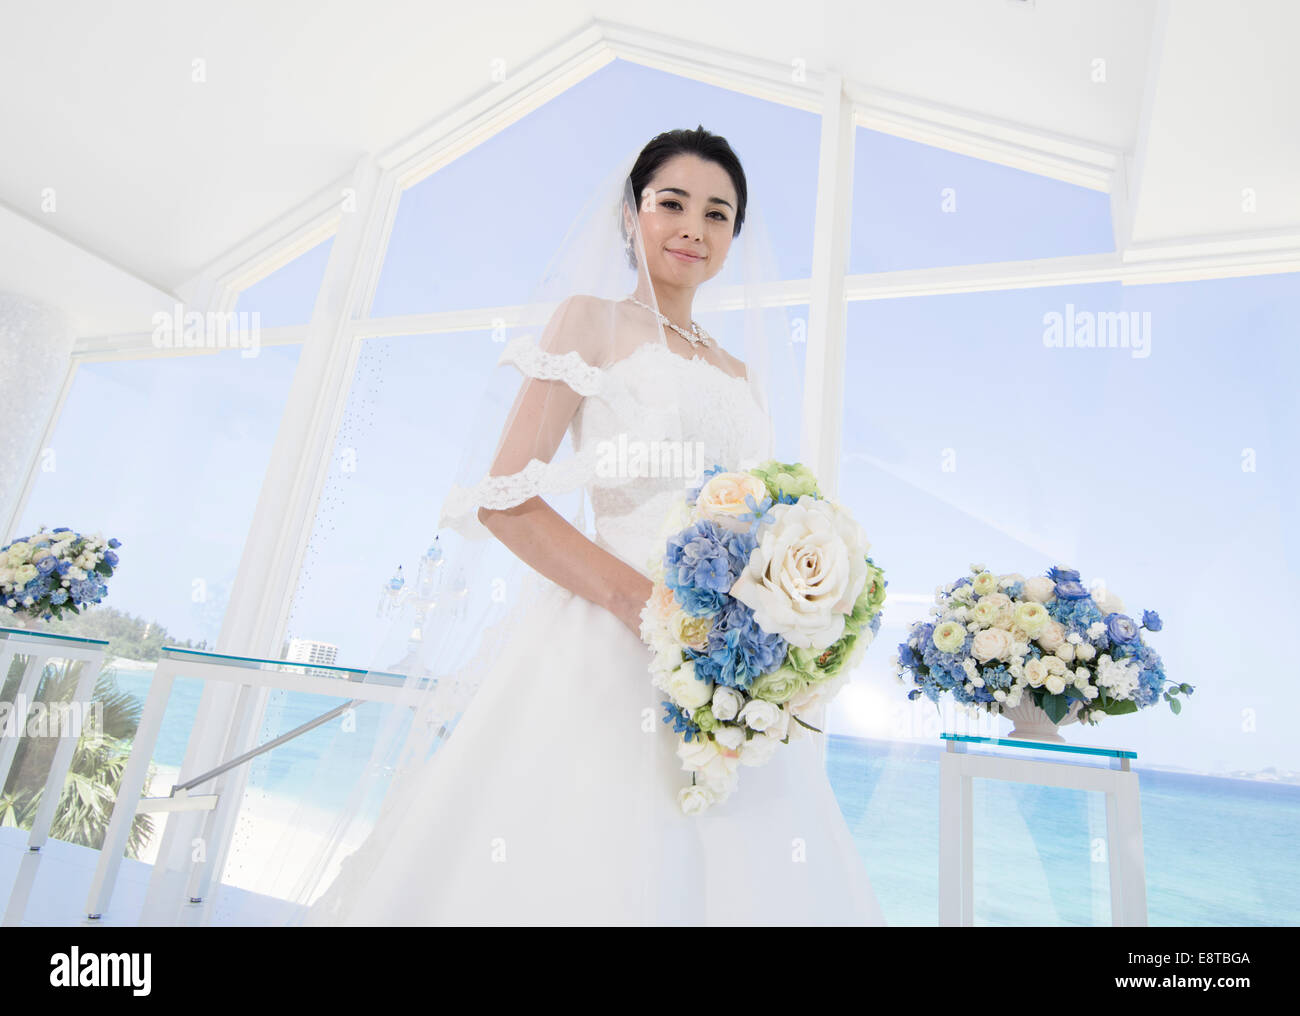 Asian American Bride White Wedding Stockfotos & Asian American Bride ...